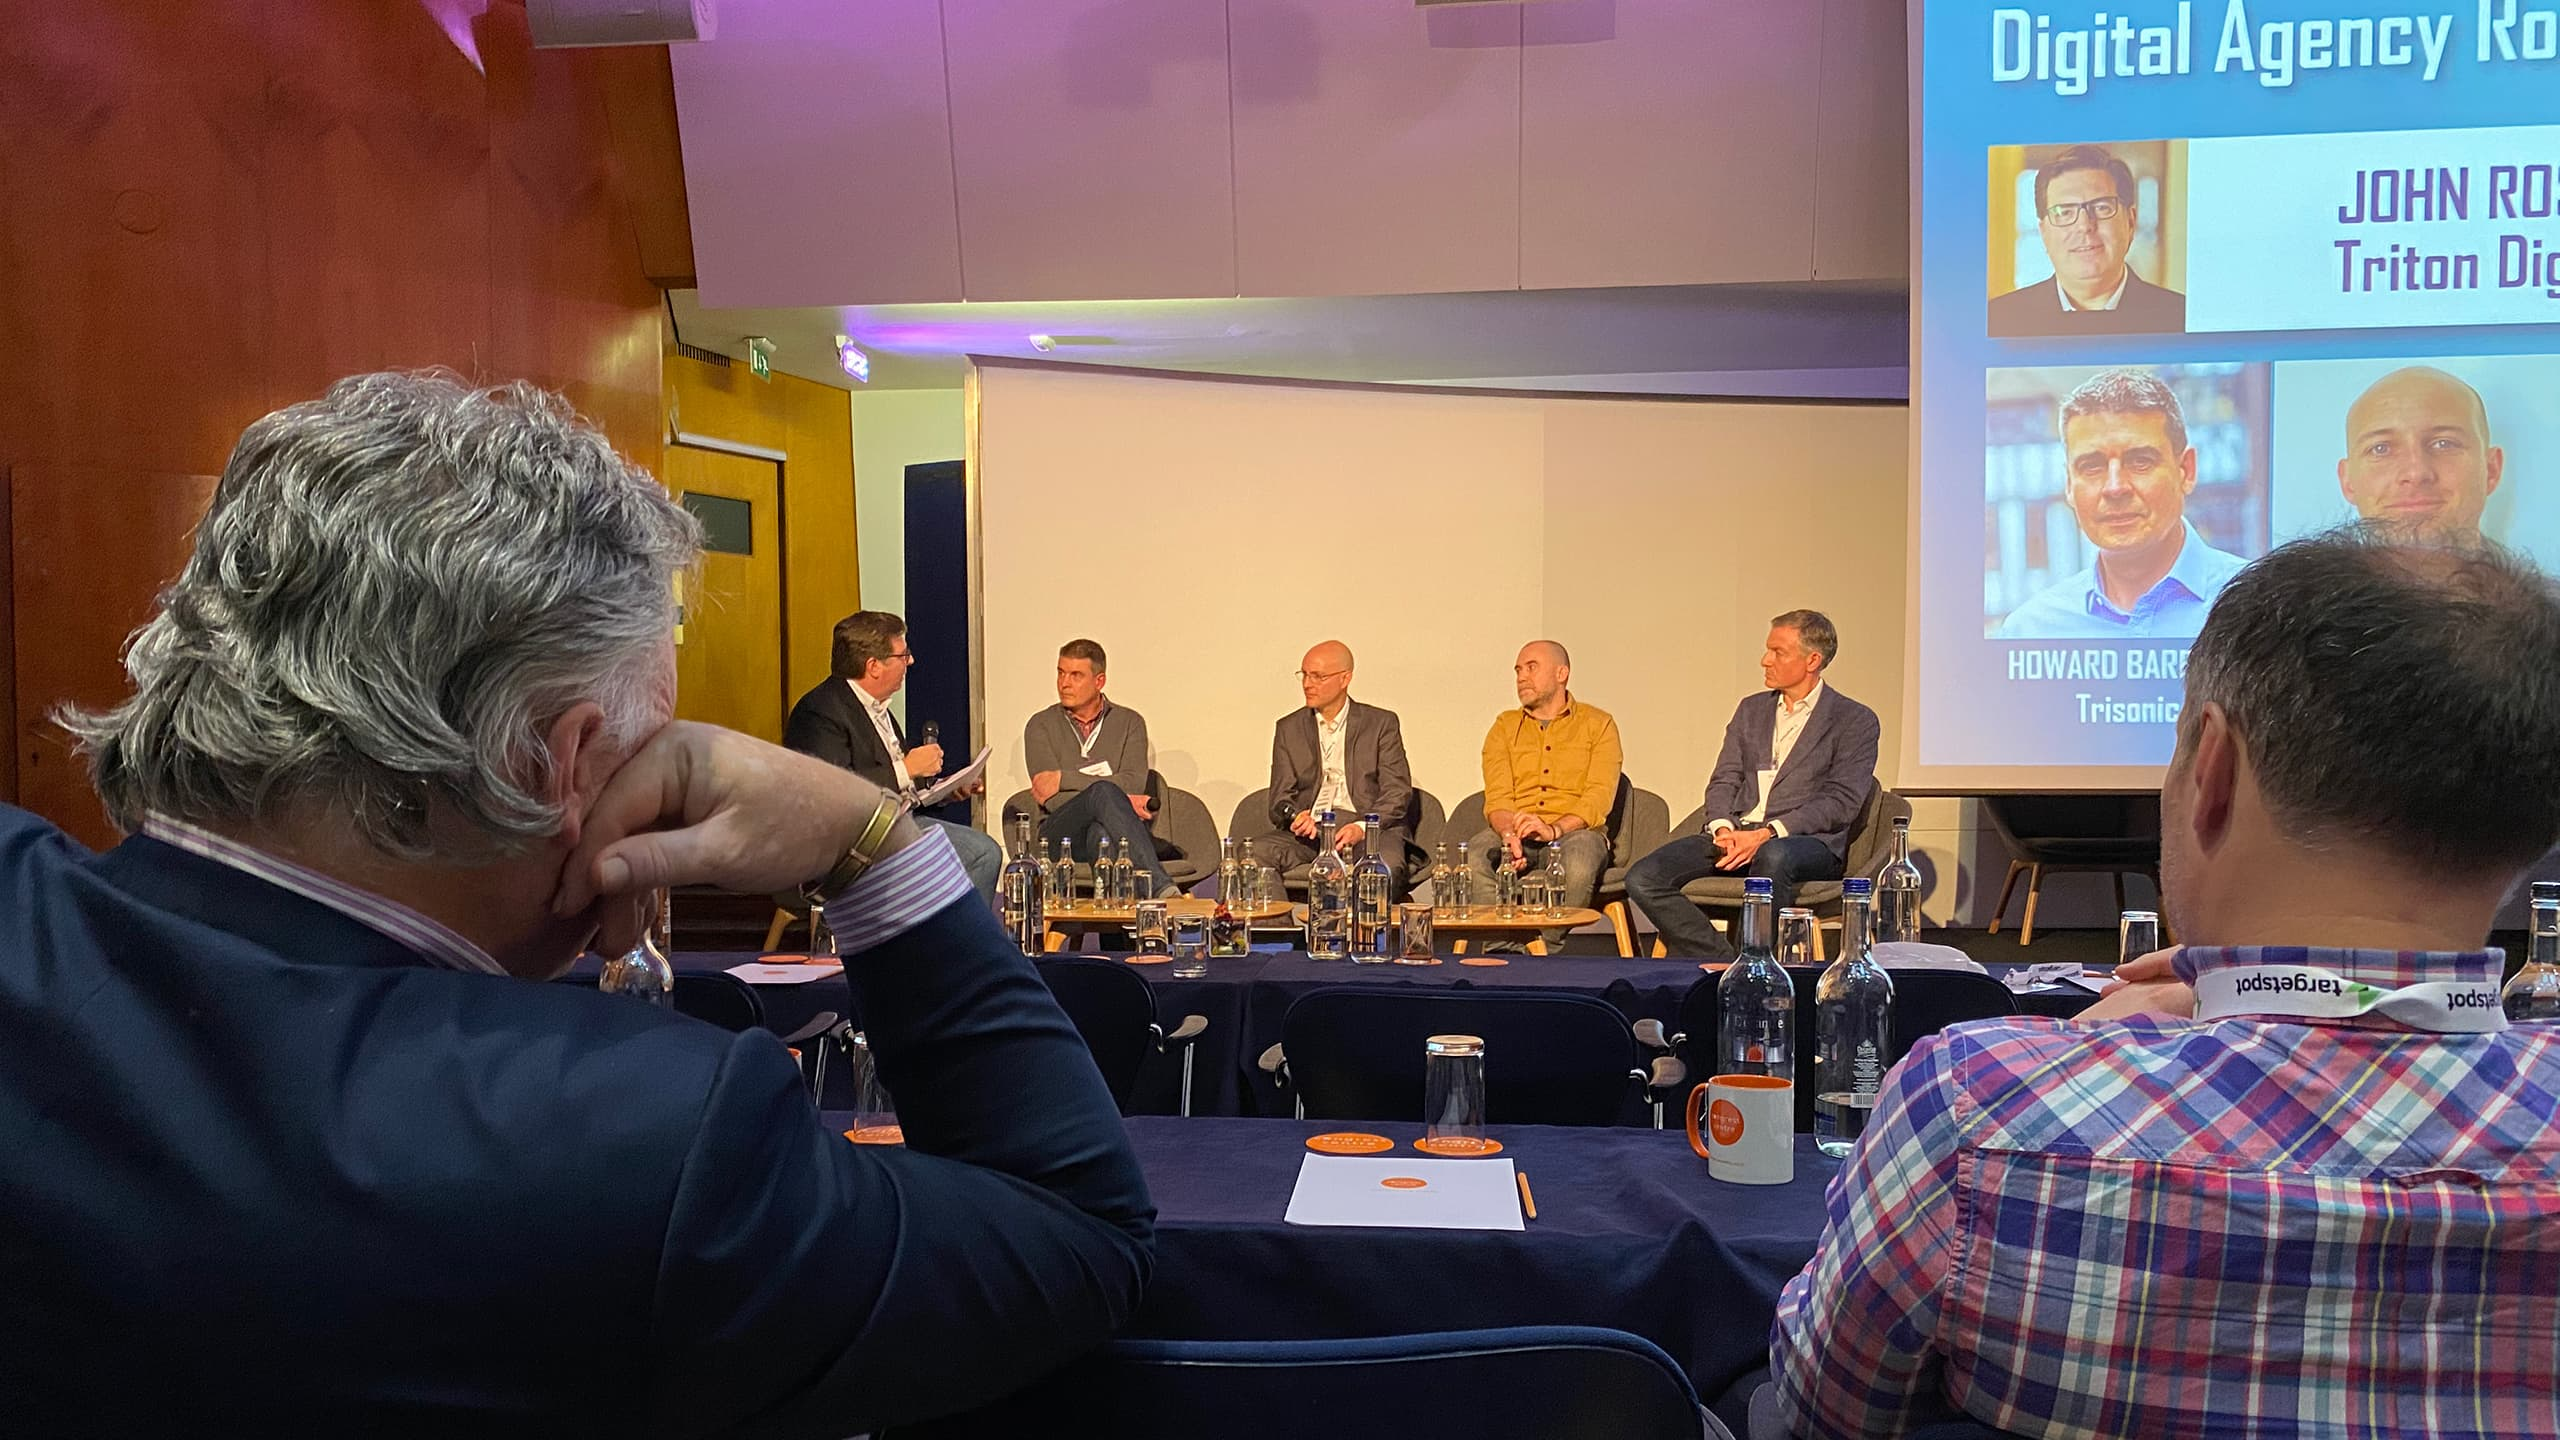 Trisonic's Howard Bareham discussing audio media at RAIN conference in London